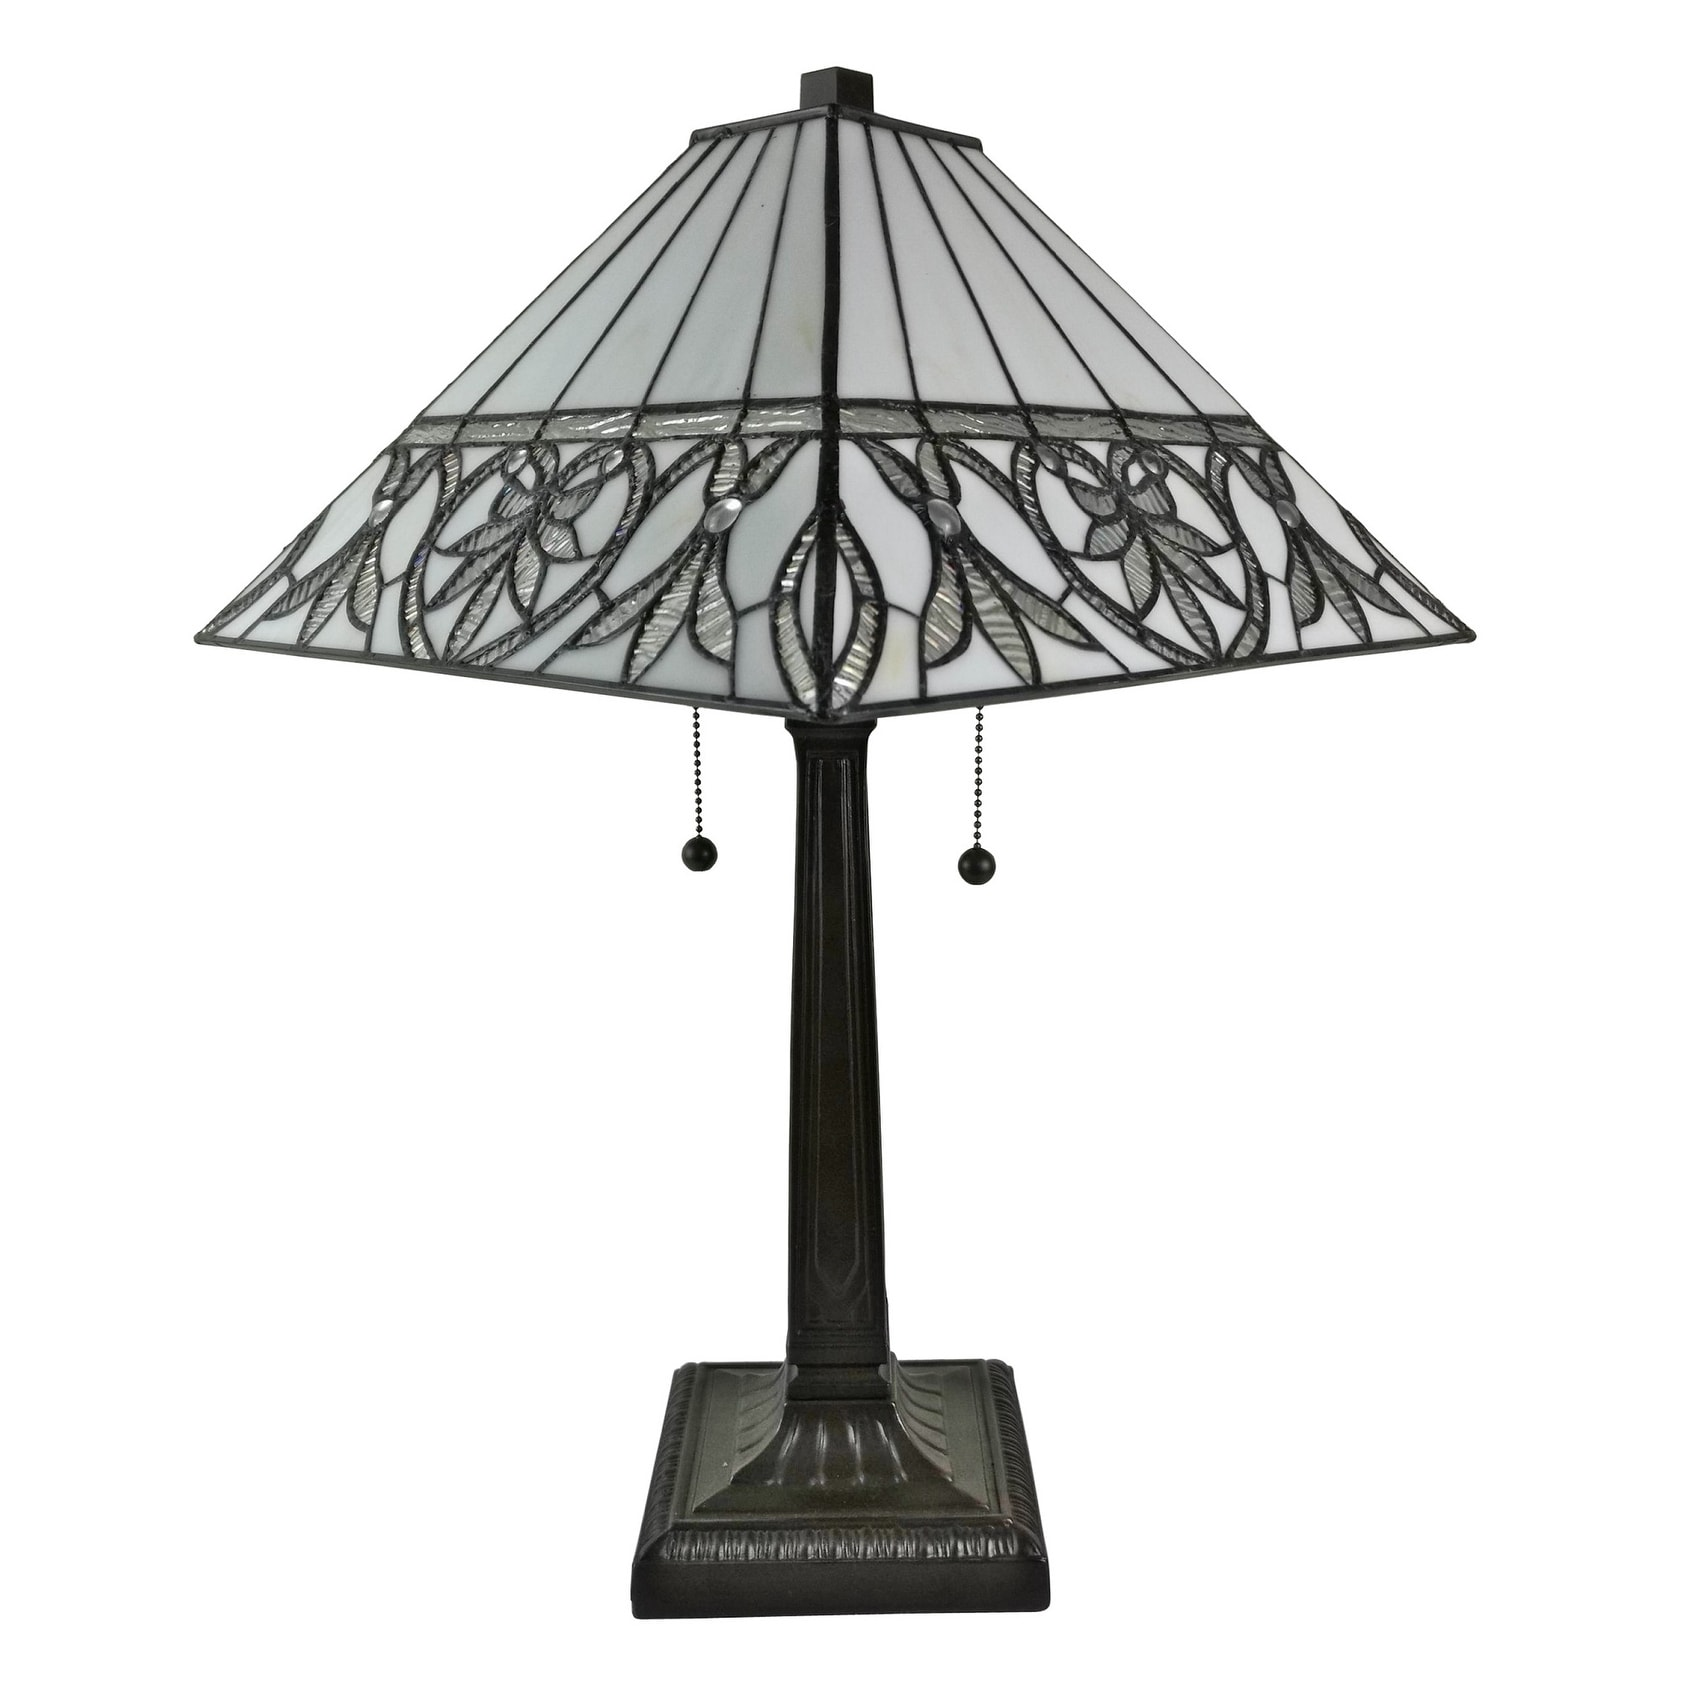 Shop Amora Lighting Am303tl14 Tiffany Style White Floral Mission